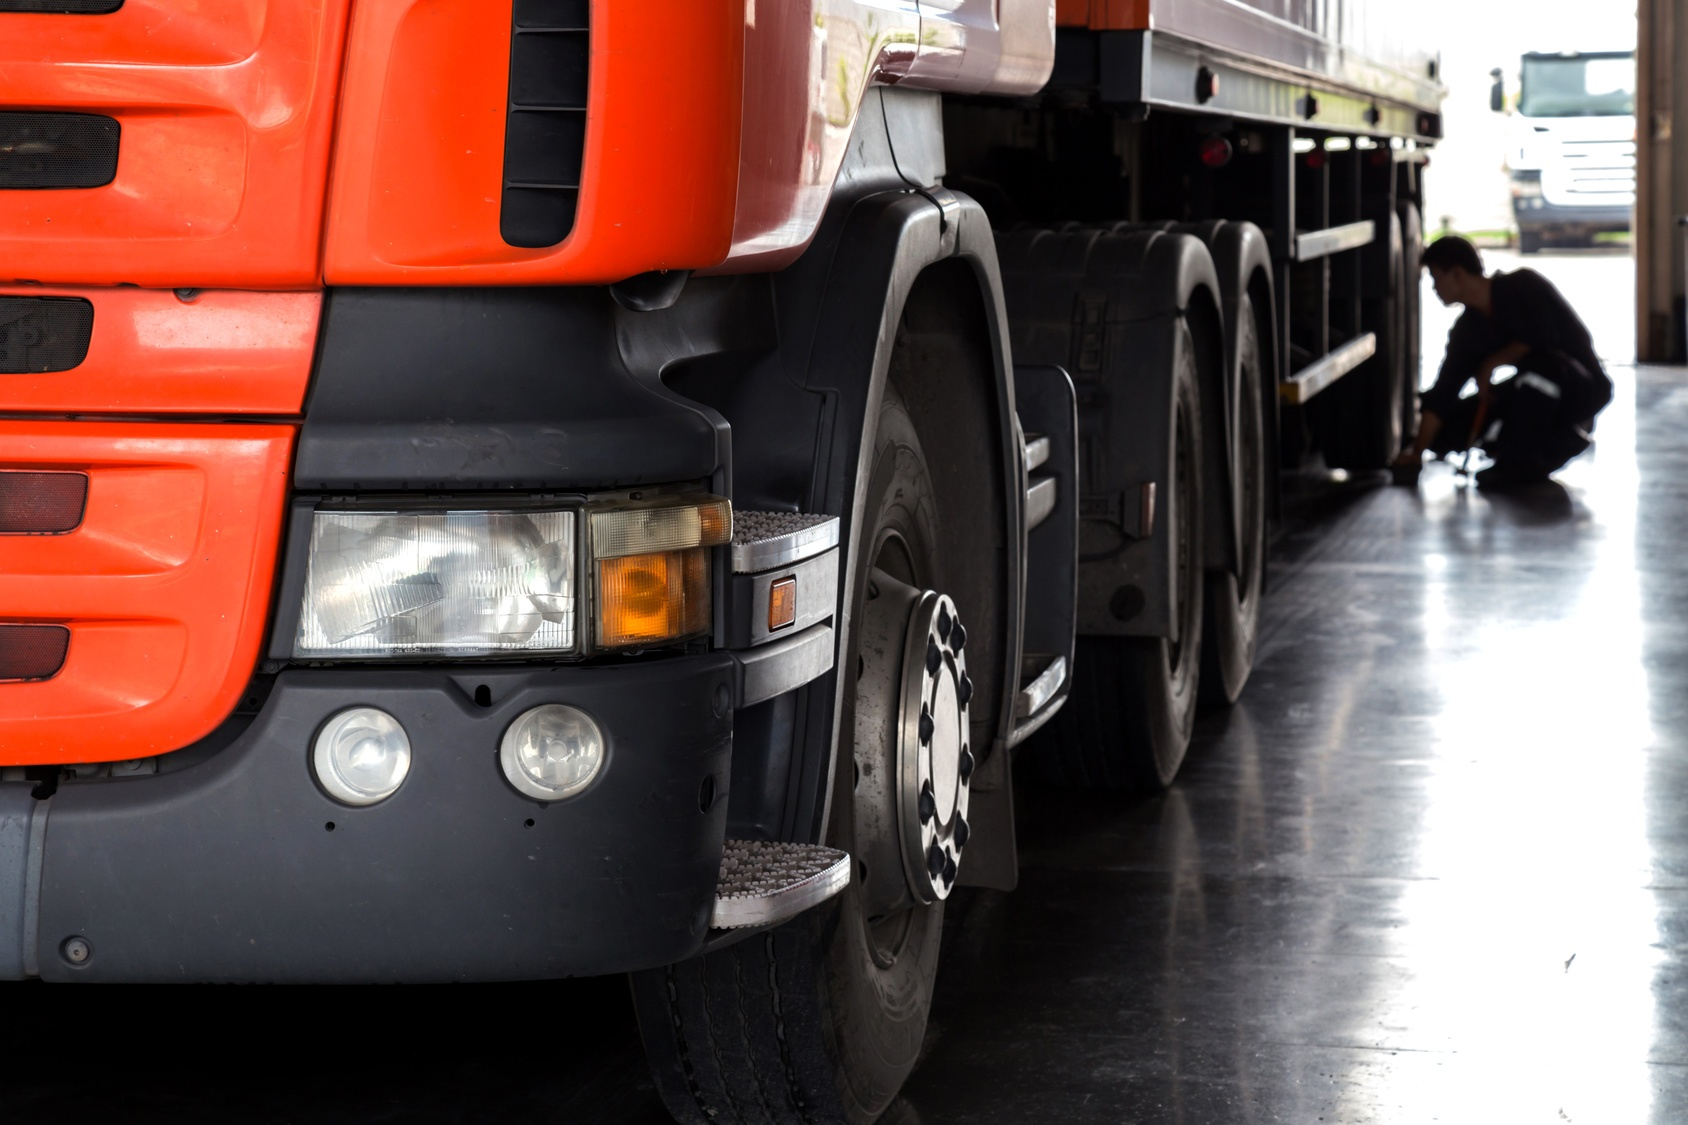 Regular repair and maintenance is critical for making sure that fleet assets perform at their best.